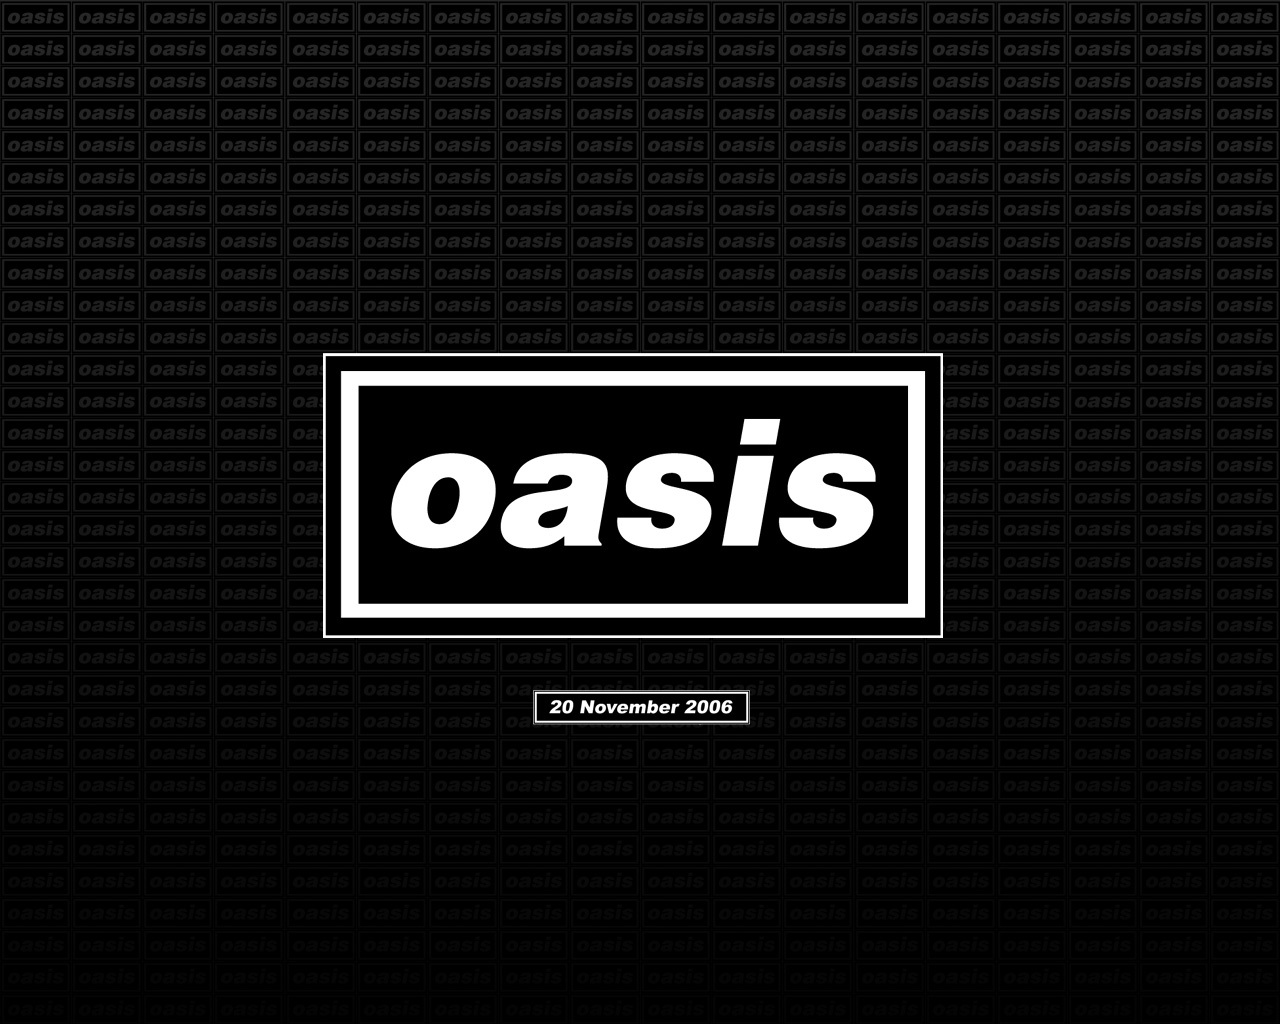 HD Live Oasis Pictures Wallpapers NGL67 WP 1280x1024